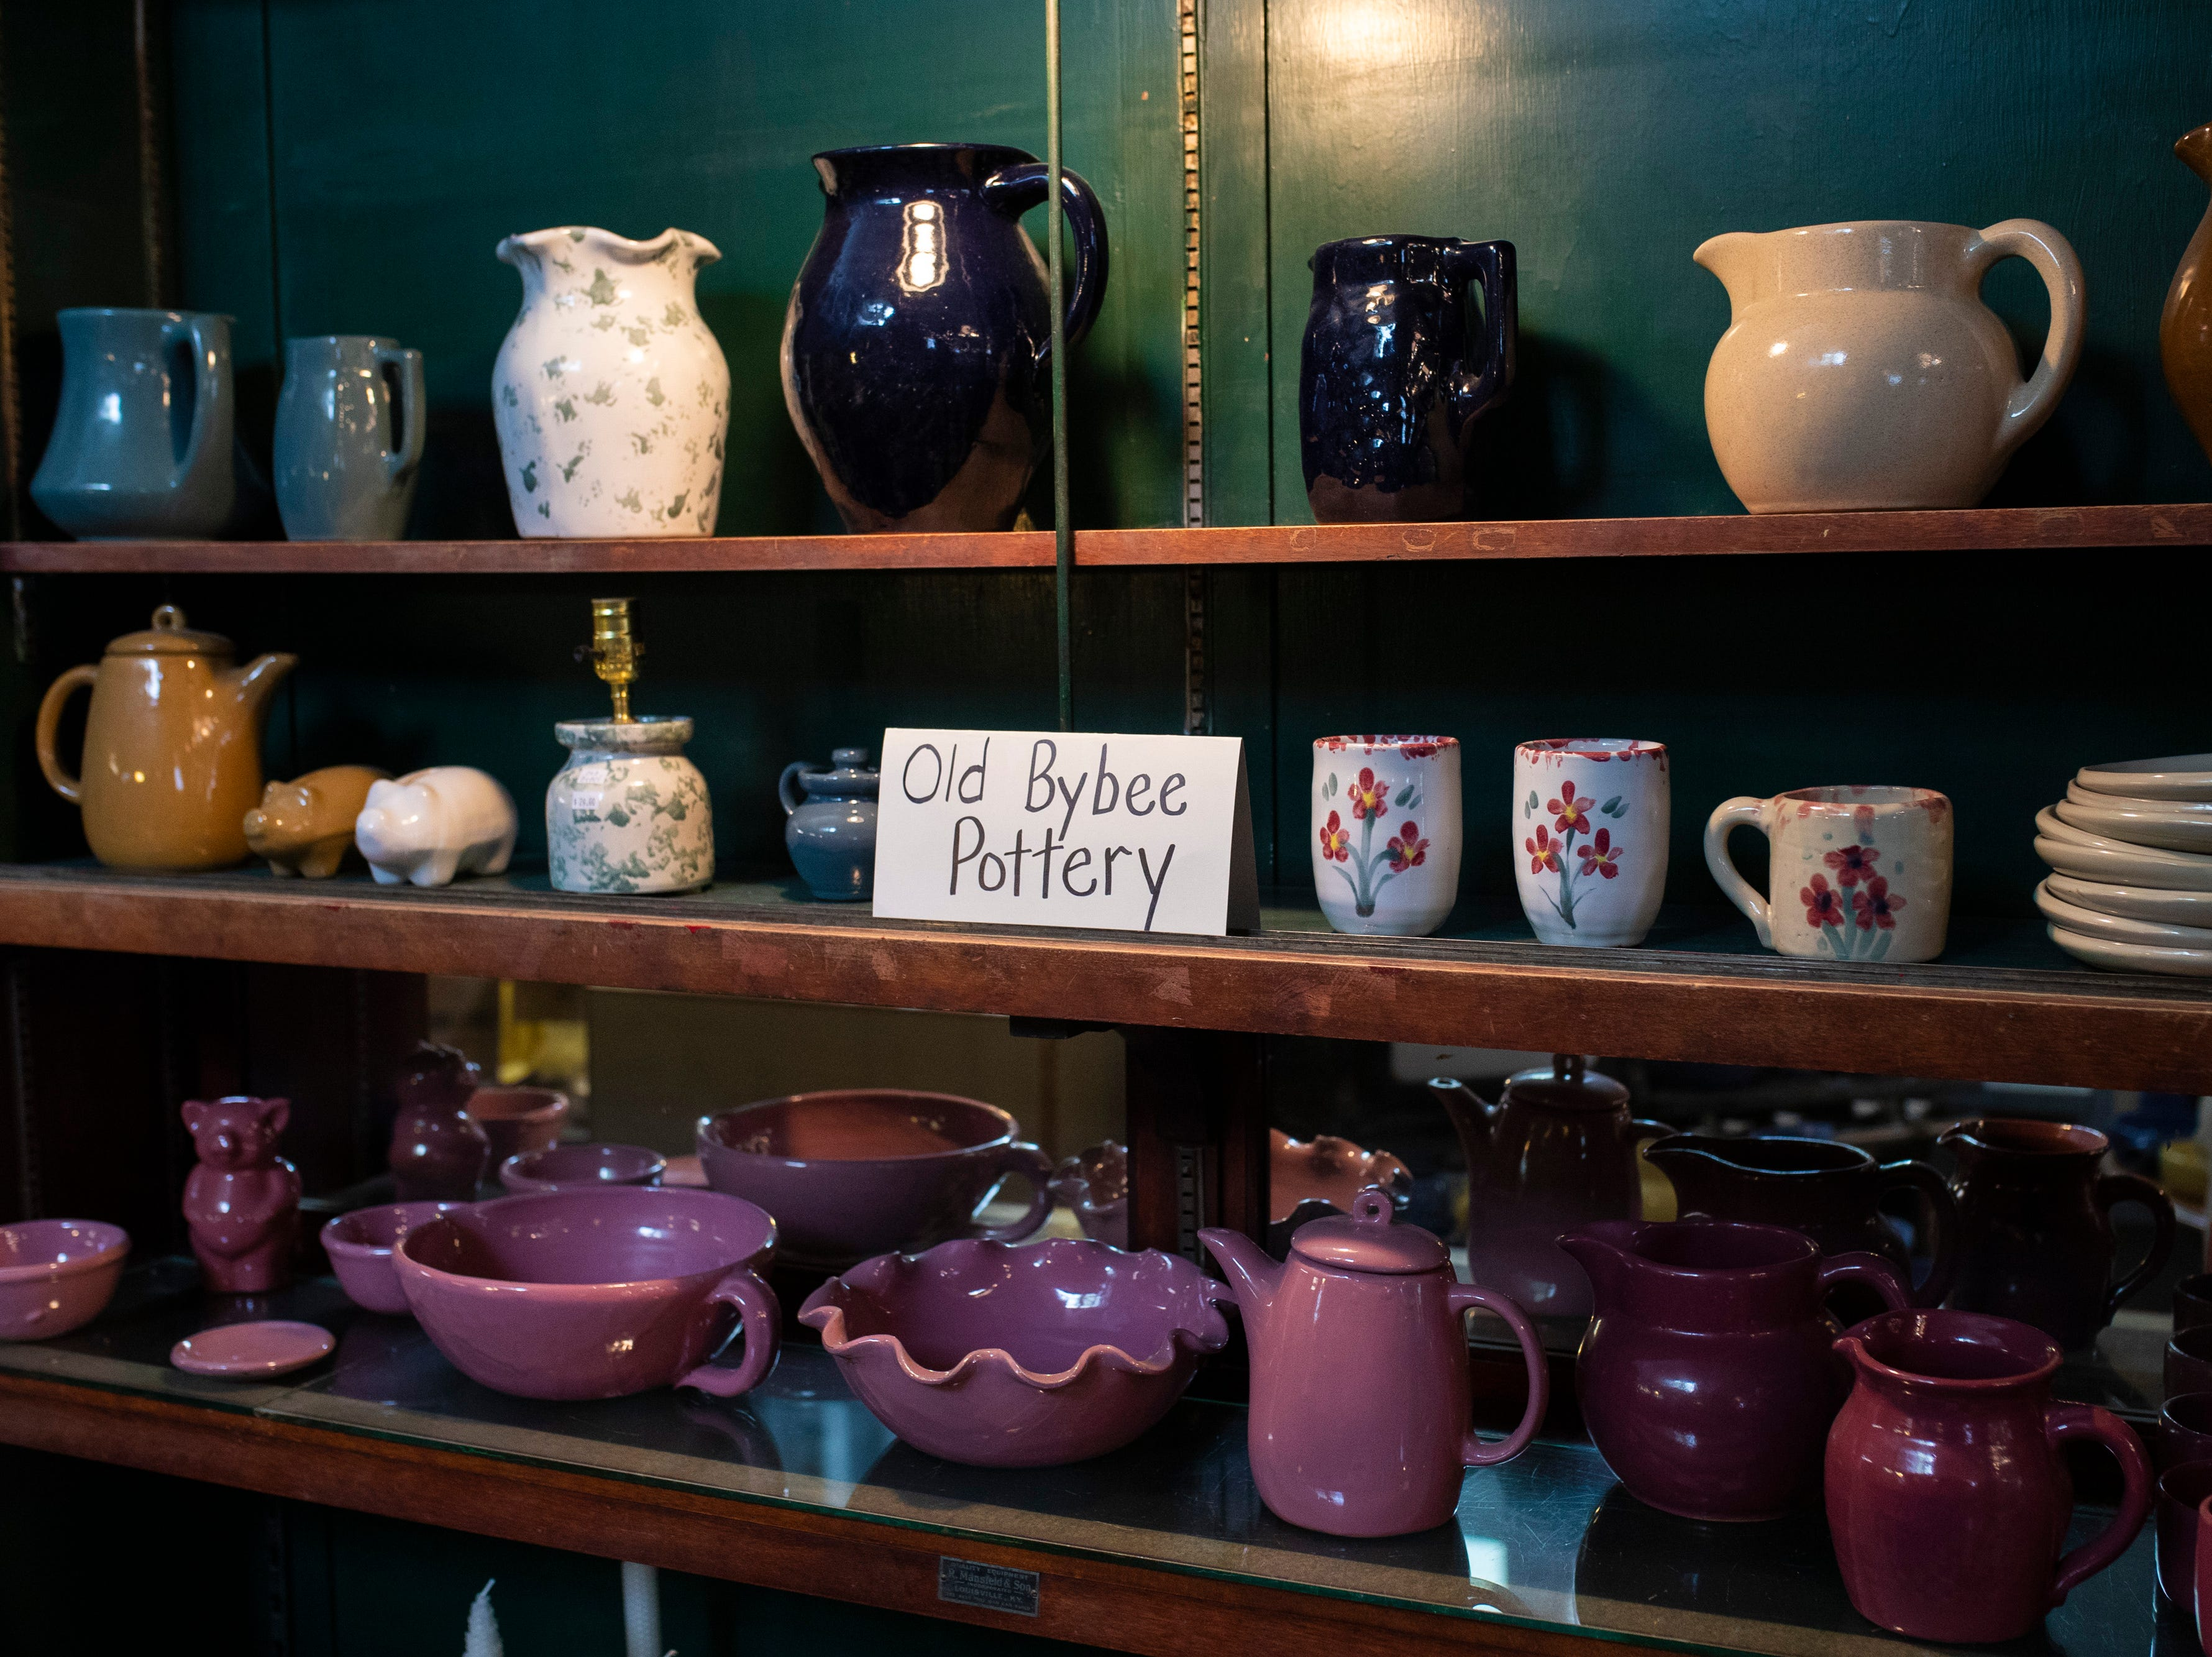 Potter for sale inside the Little Bit of Bybee pottery shop in the Middletown neighborhood. May 8, 2019